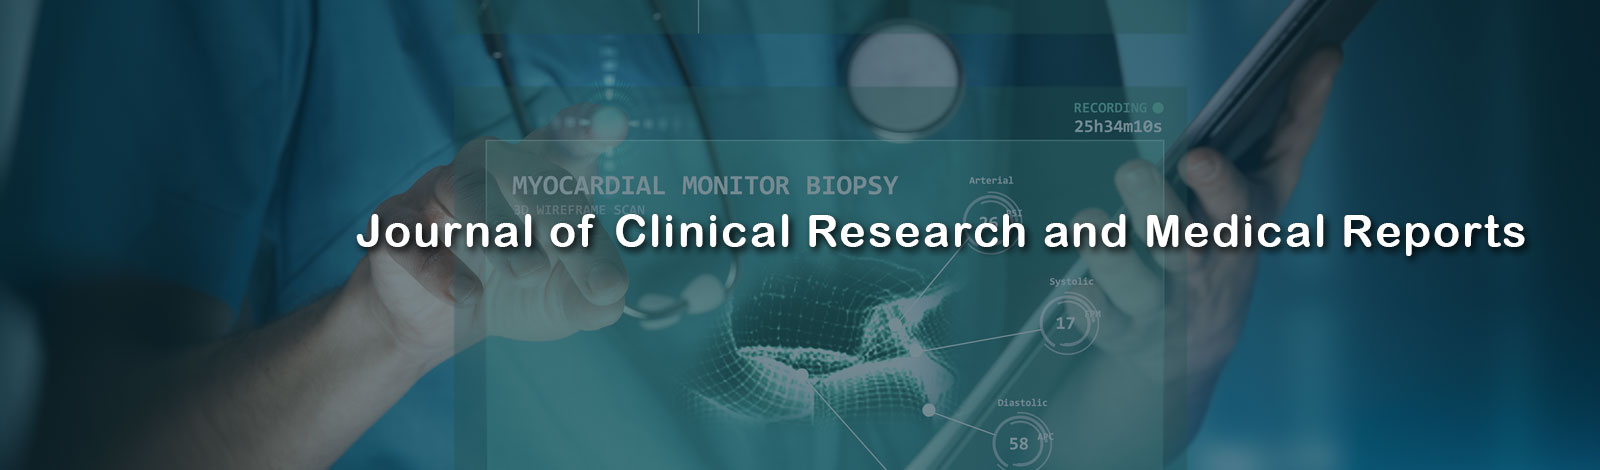 Journal of Clinical Research and Medical Reports